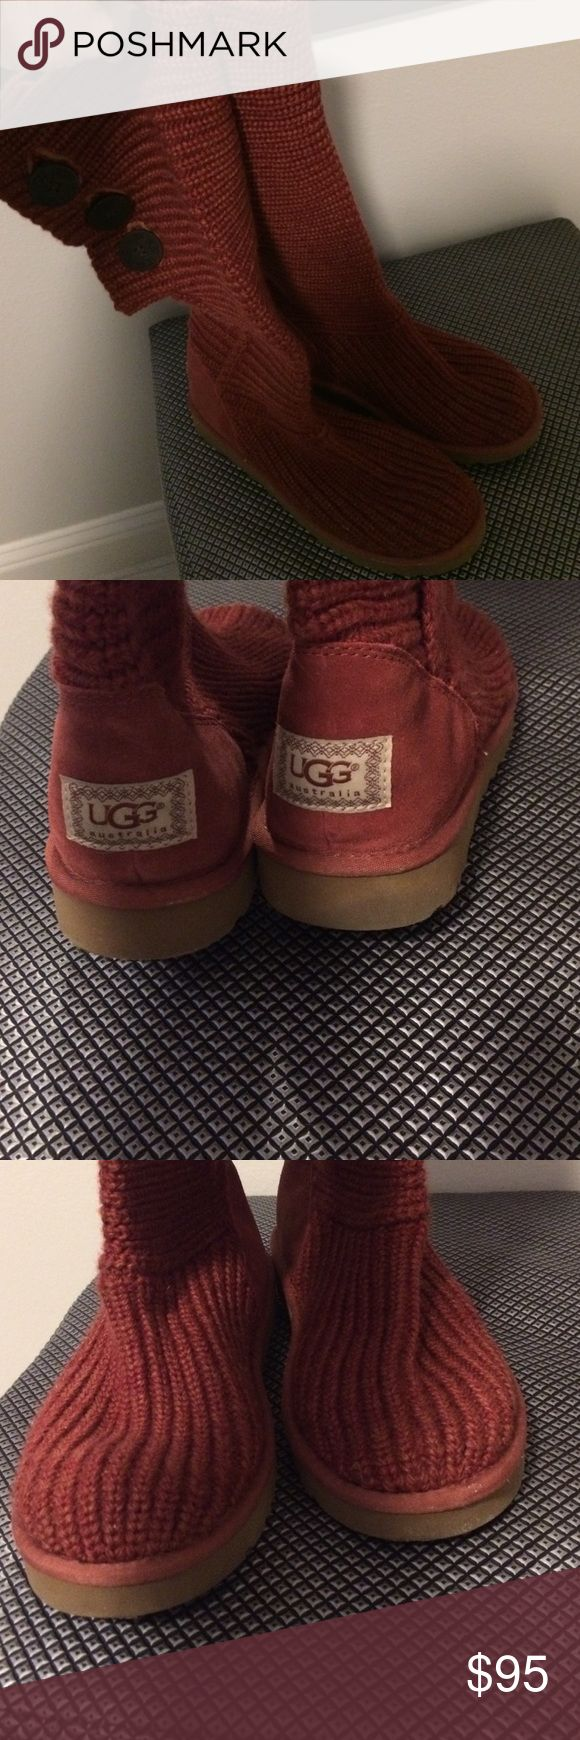 Plum knit over the knee Uggs Over the knee or cuff these plum knit, with suede heels and shearling foot bed Uggs. Worn once, in excellent, almost new condition uggs Shoes Winter & Rain Boots